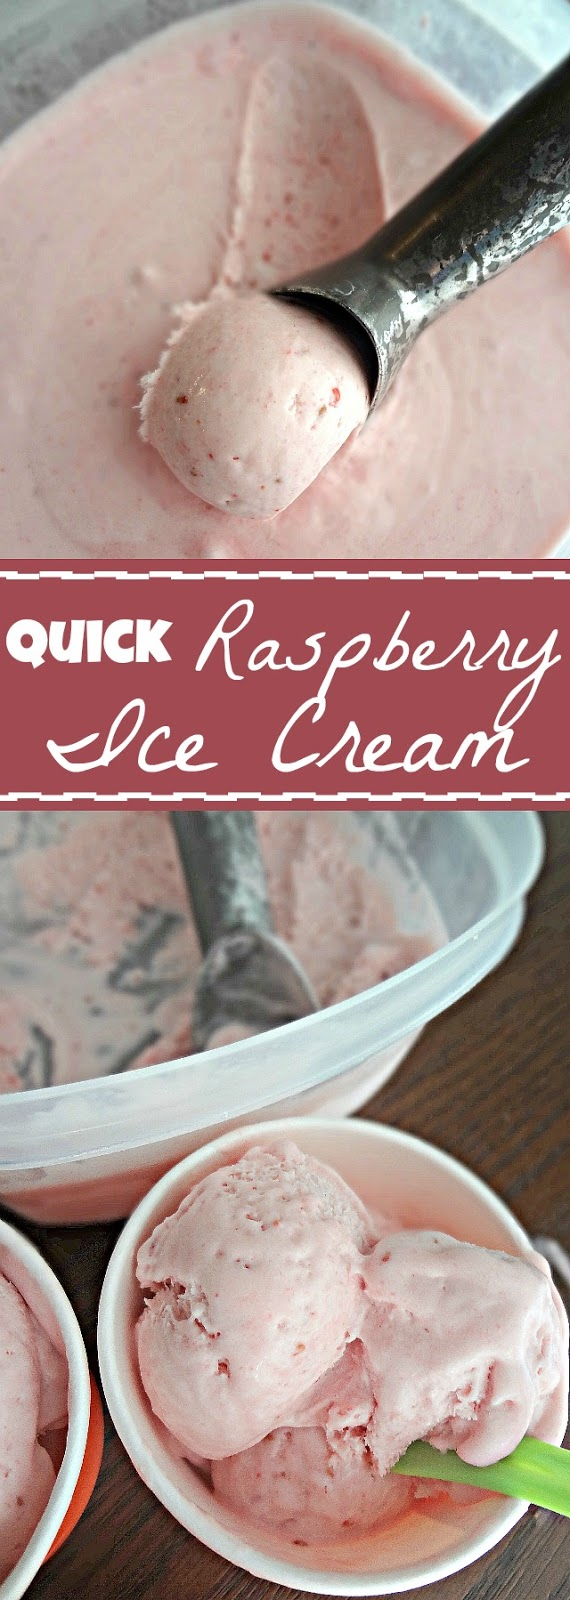 Quick Raspberry Ice Cream